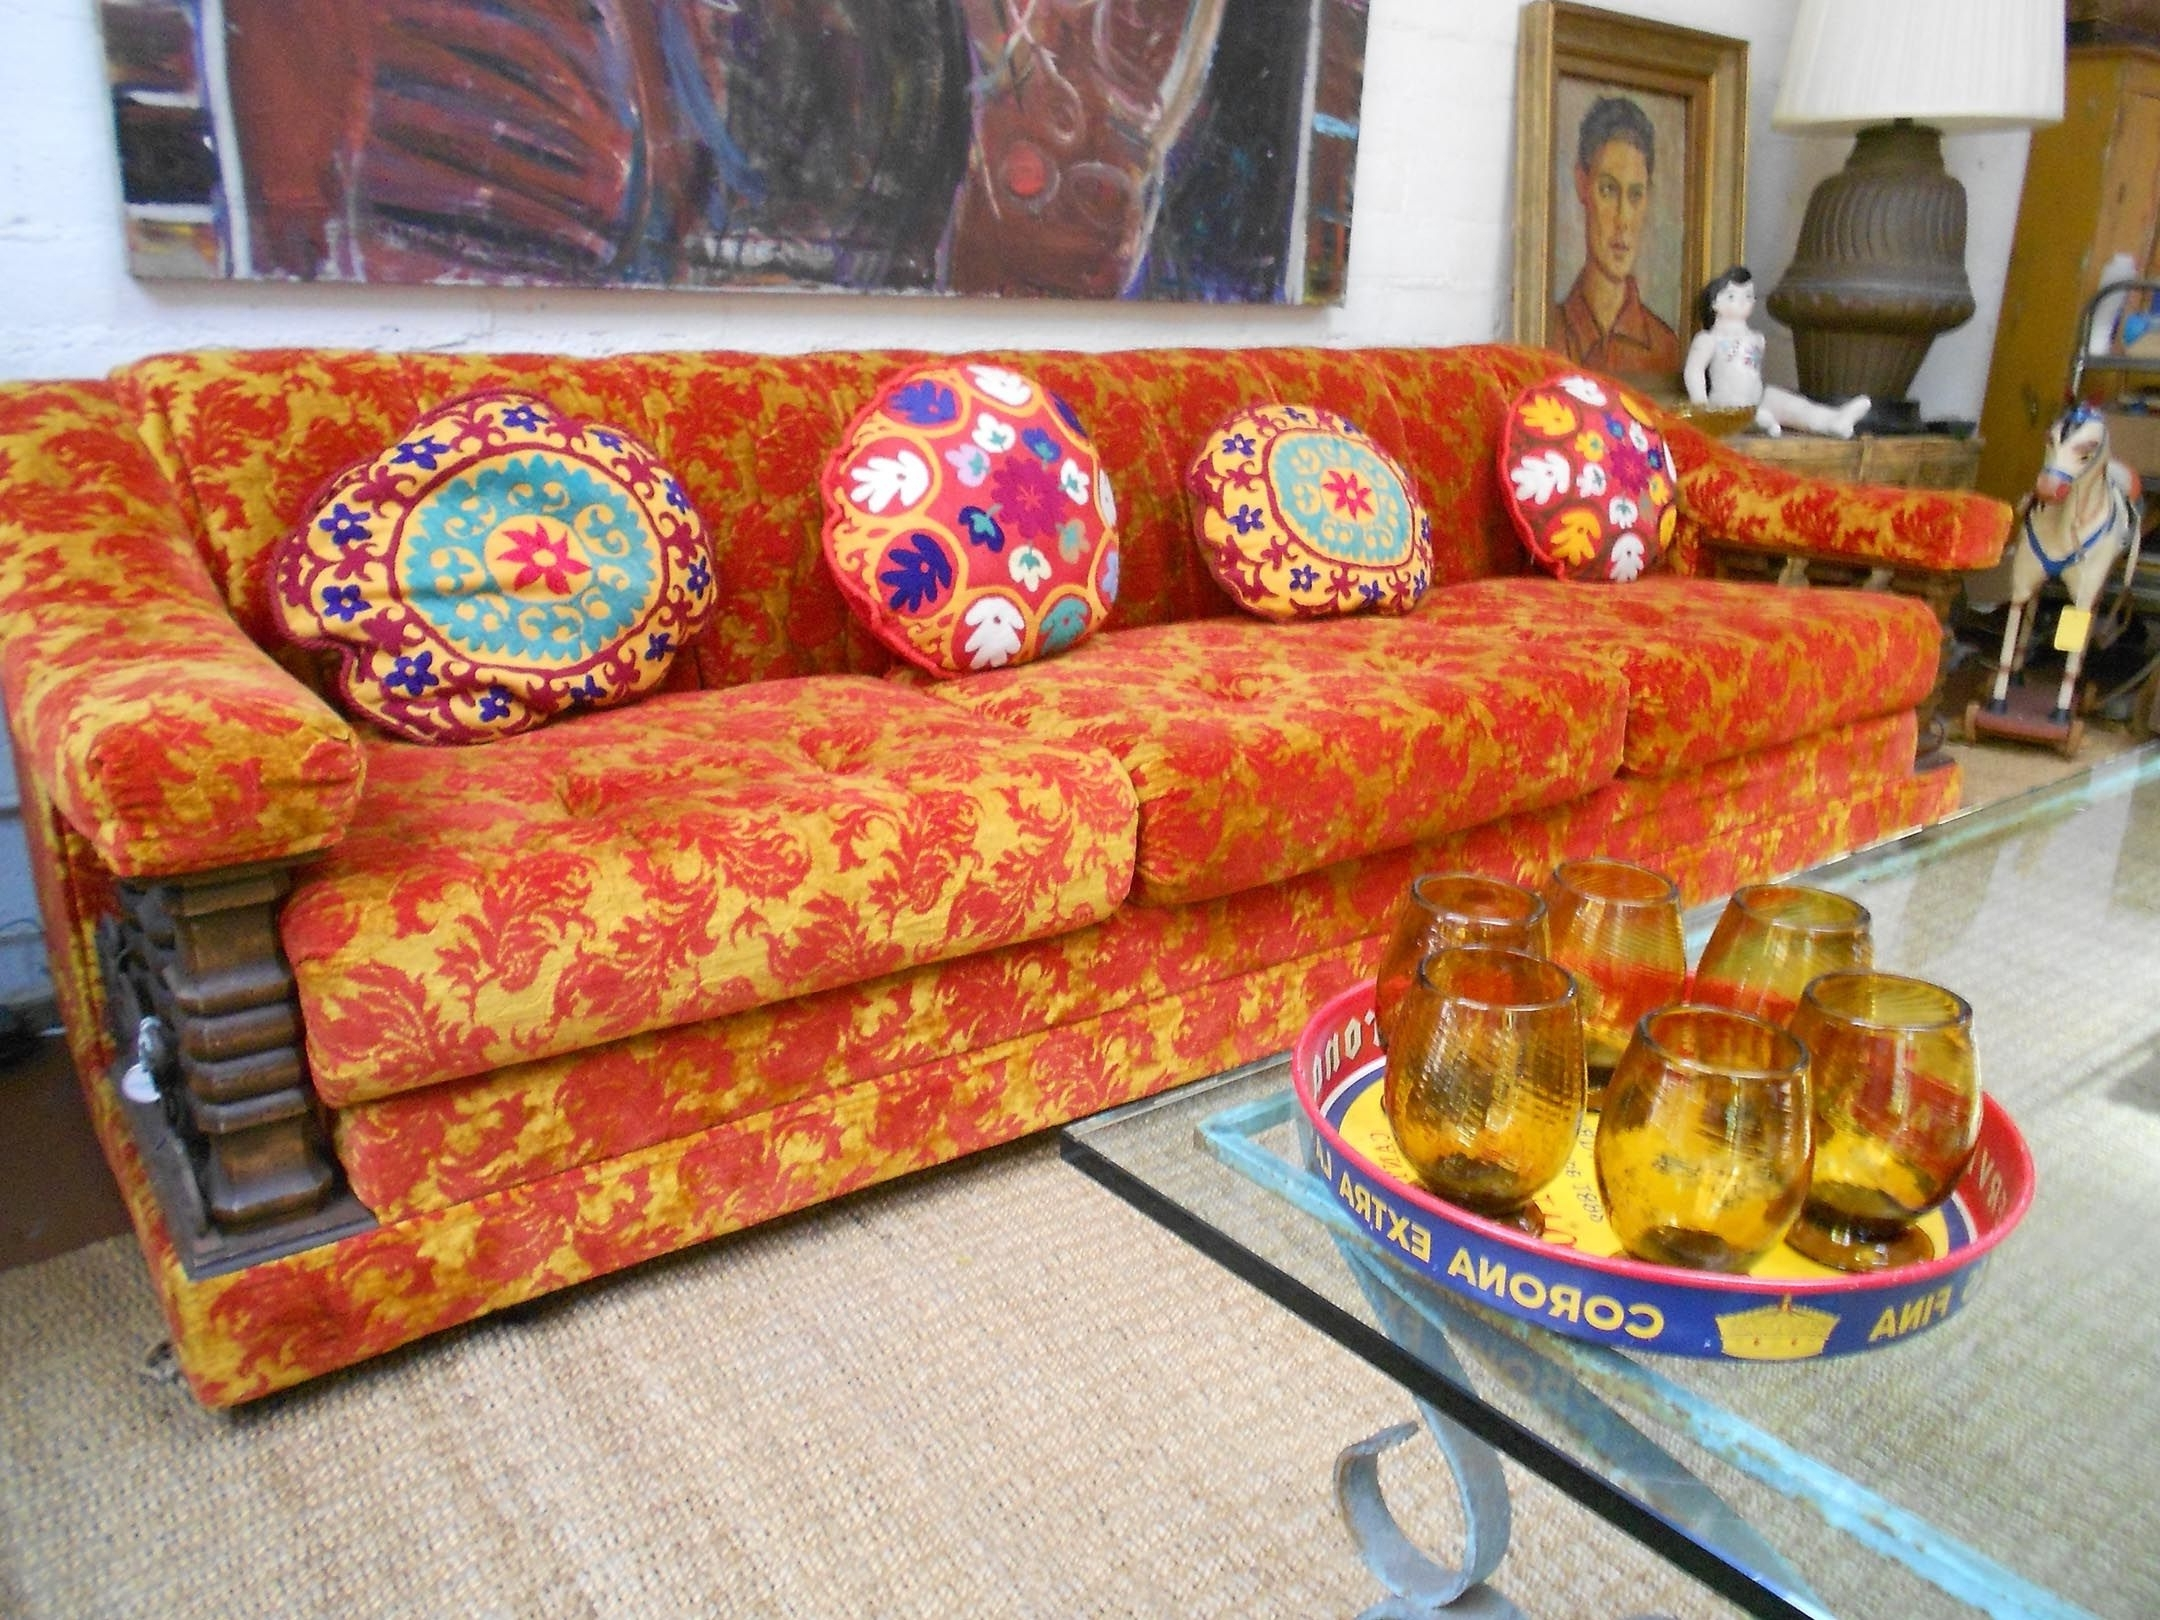 Sears Sectional Sofas Regarding 2019 Orange #red #brocade #sofa #1960's #uzbeki #pillows #handblown (View 11 of 20)